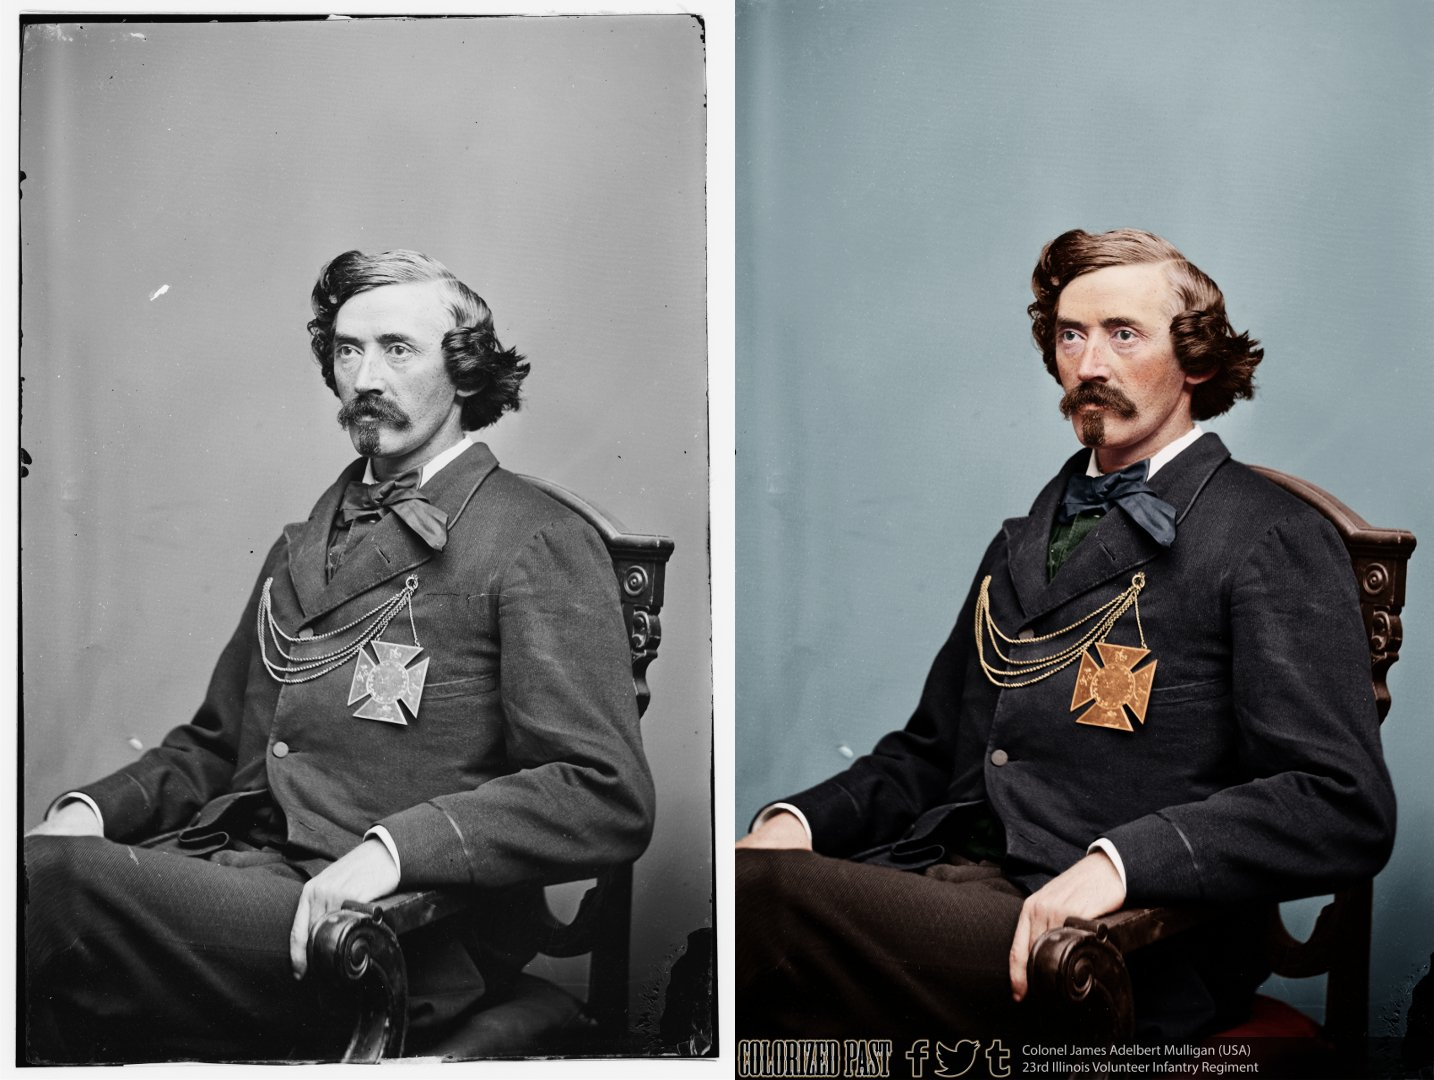 From @ColorizedPast: James Mulligan attempted to improve conditions at Camp Douglas POW camp in 1862 @civilwartrust https://t.co/KNH9sbHpsK